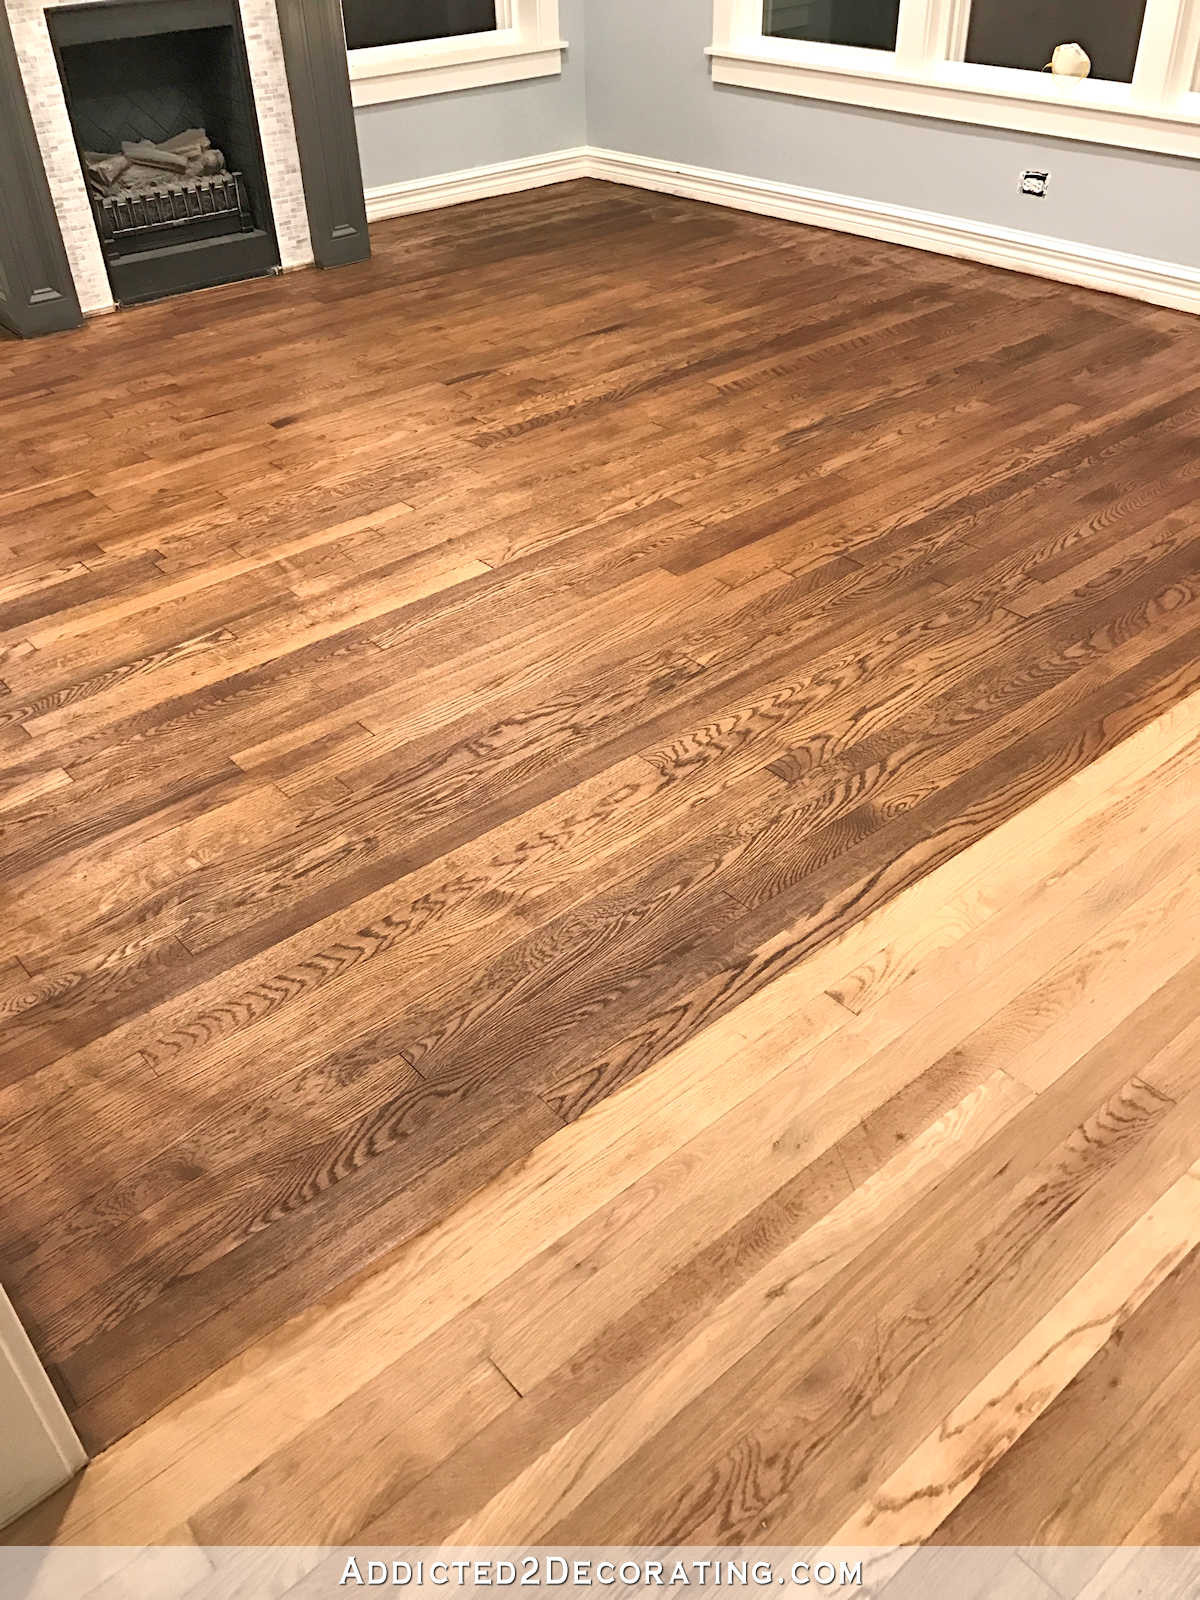 Hardwood Floor Care Products Of Adventures In Staining My Red Oak Hardwood Floors Products Process Pertaining to Staining Red Oak Hardwood Floors 7 Stain On the Living Room Floor